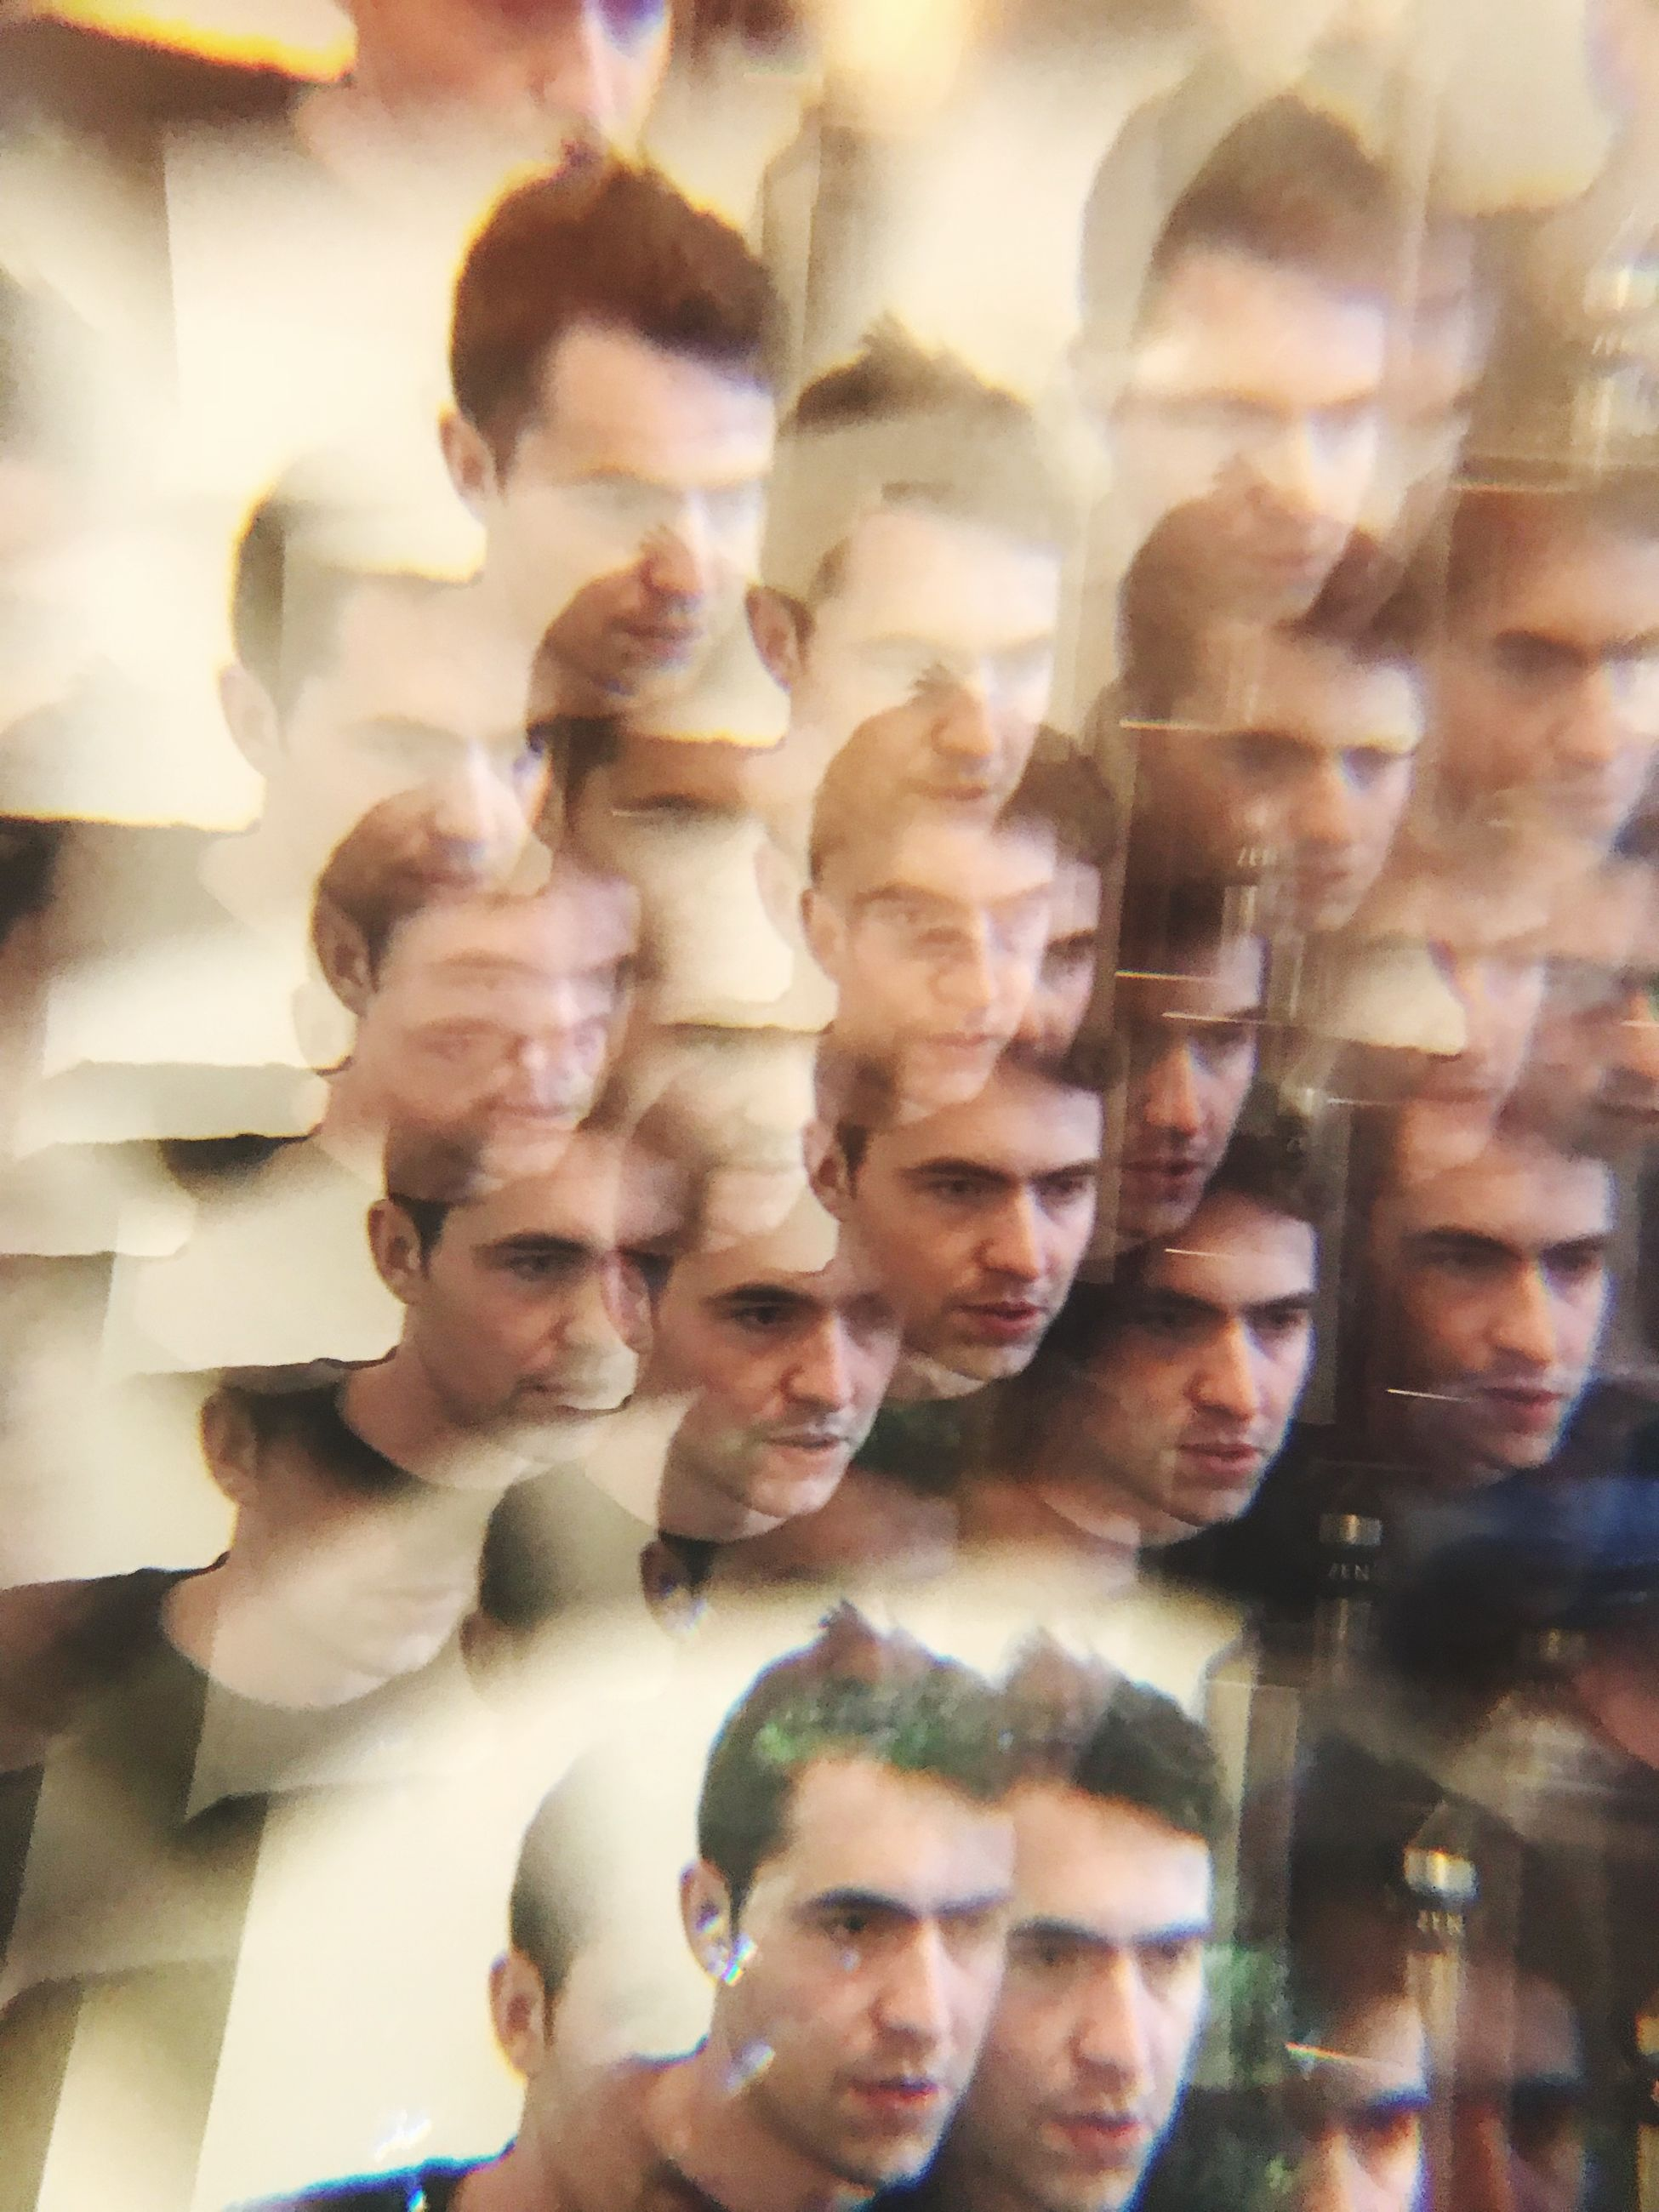 group of people, men, real people, crowd, indoors, young men, large group of people, adult, togetherness, glass - material, lifestyles, portrait, happiness, looking, reflection, women, mature adult, business, digital composite